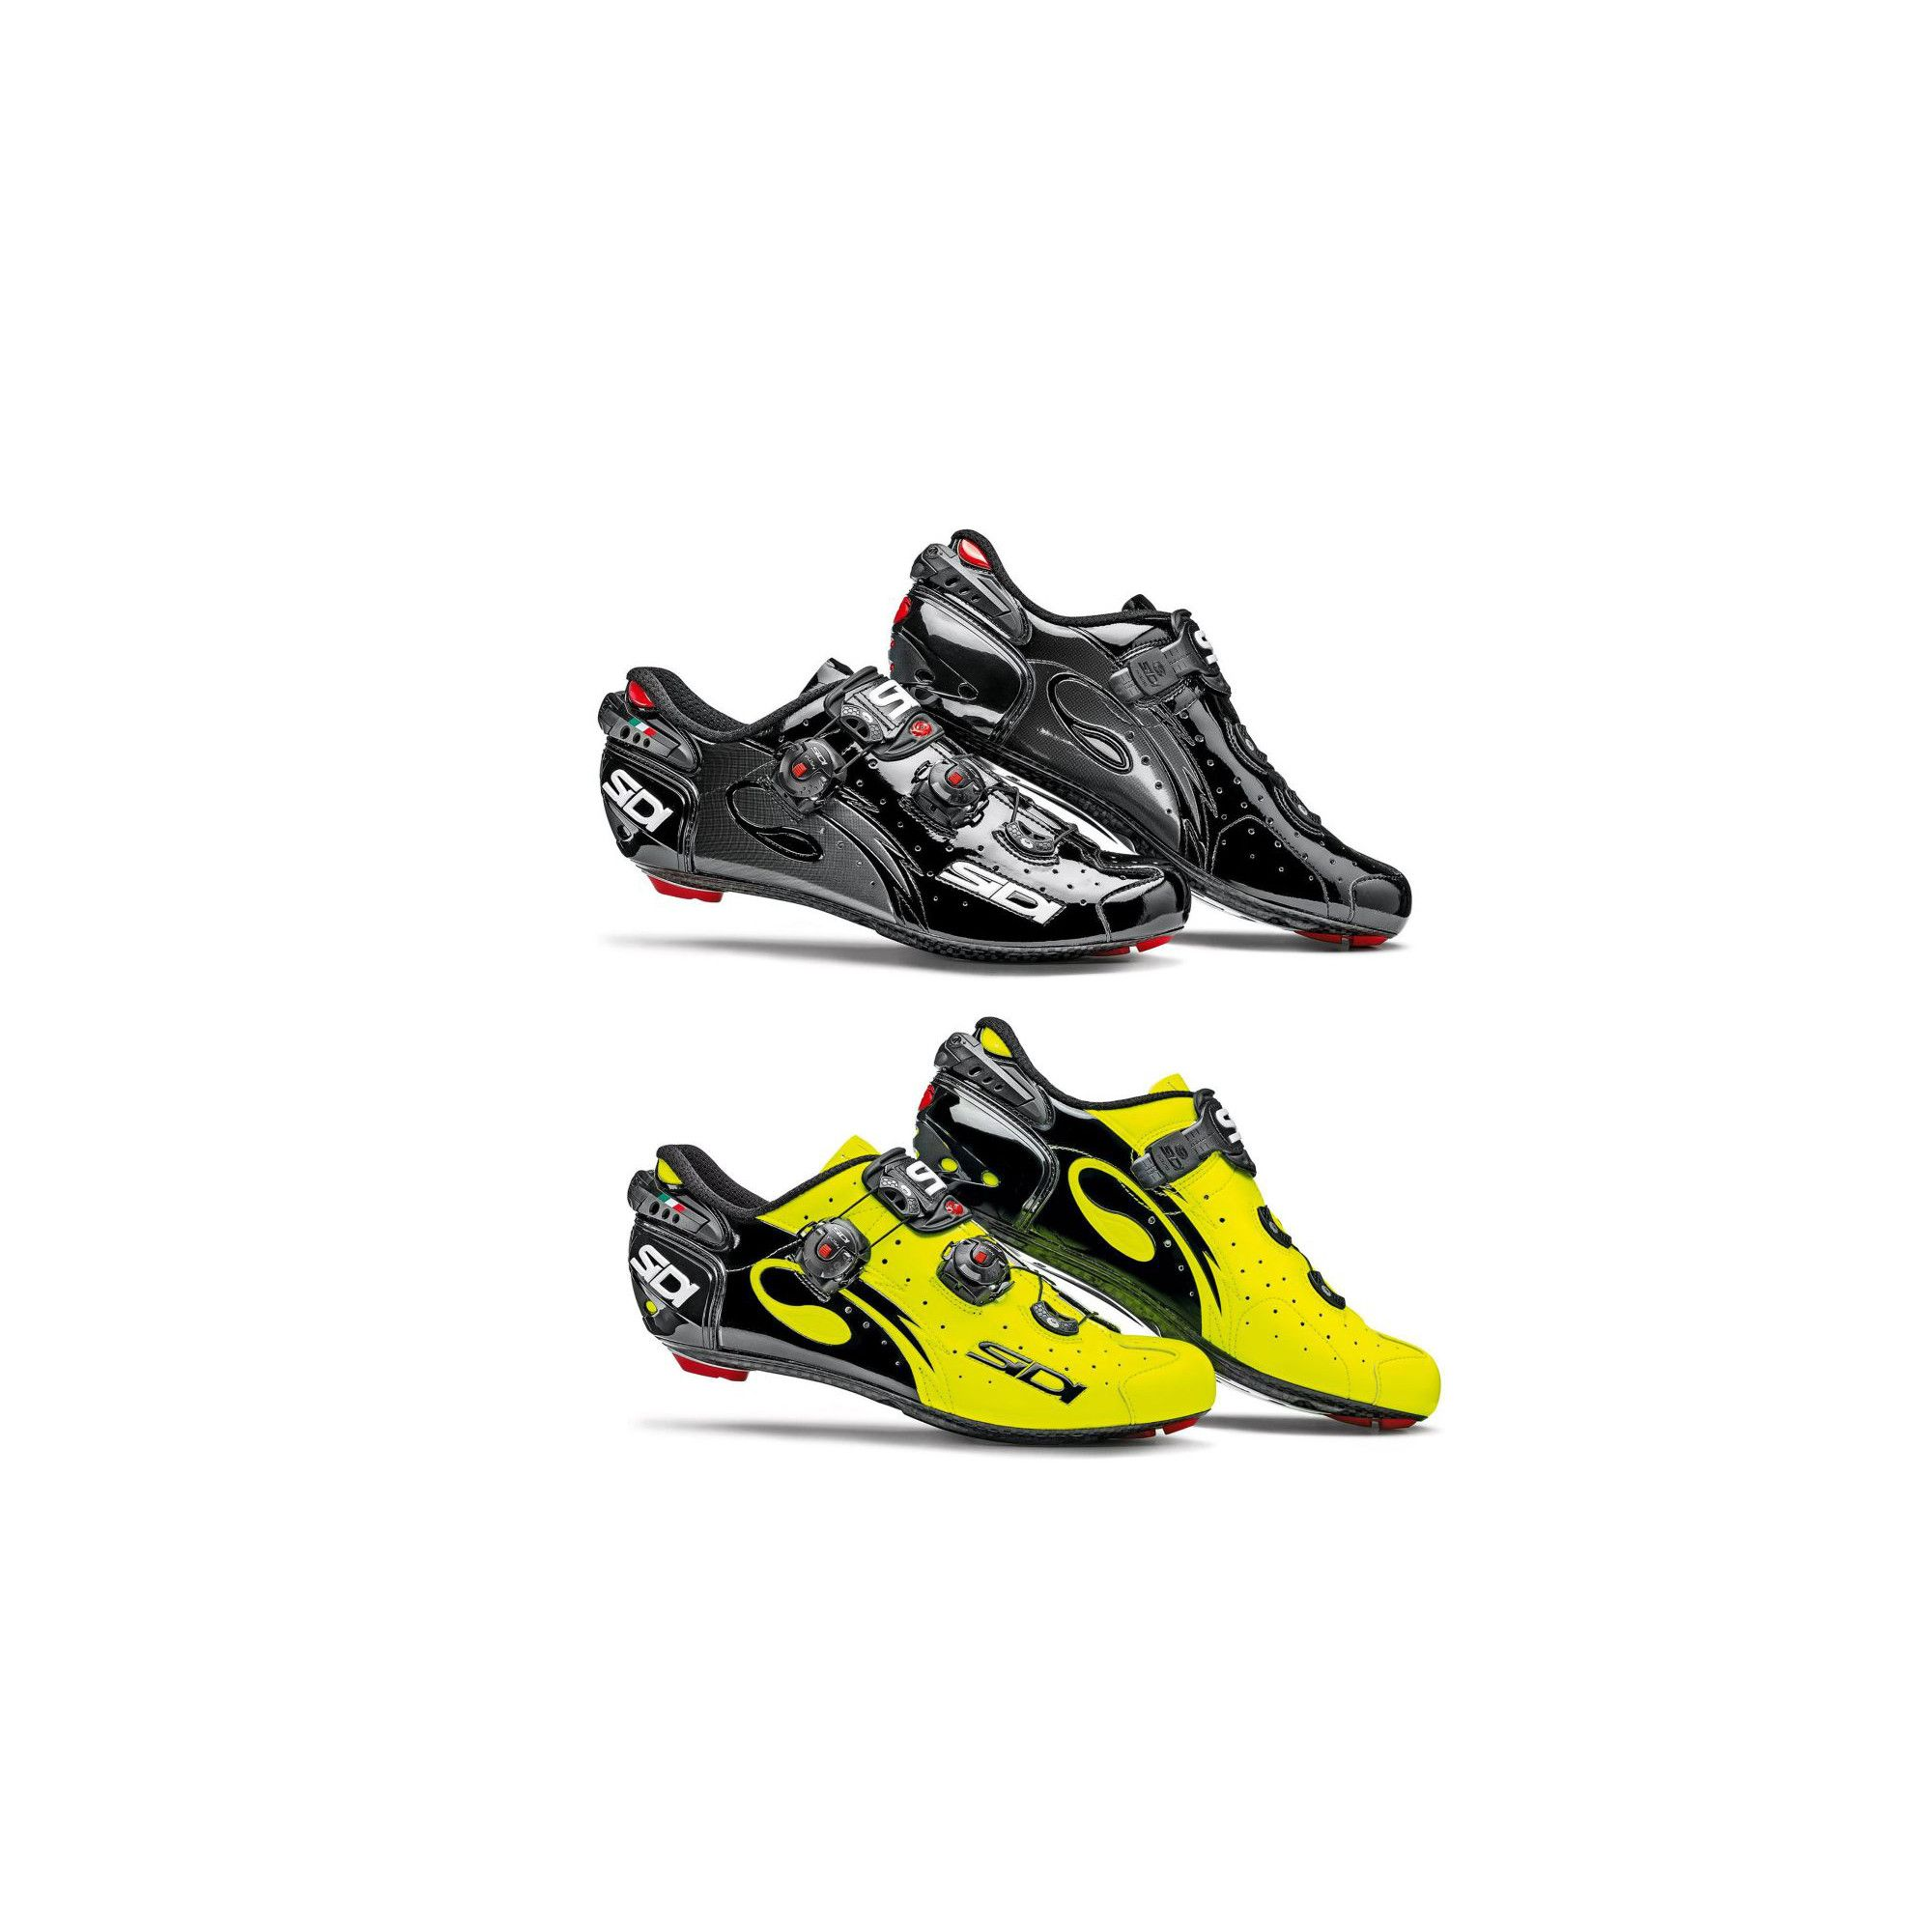 Sidi Wire Sp Carbon | Sidi Wire Carbon Vernice | Sidi Wire Yellow